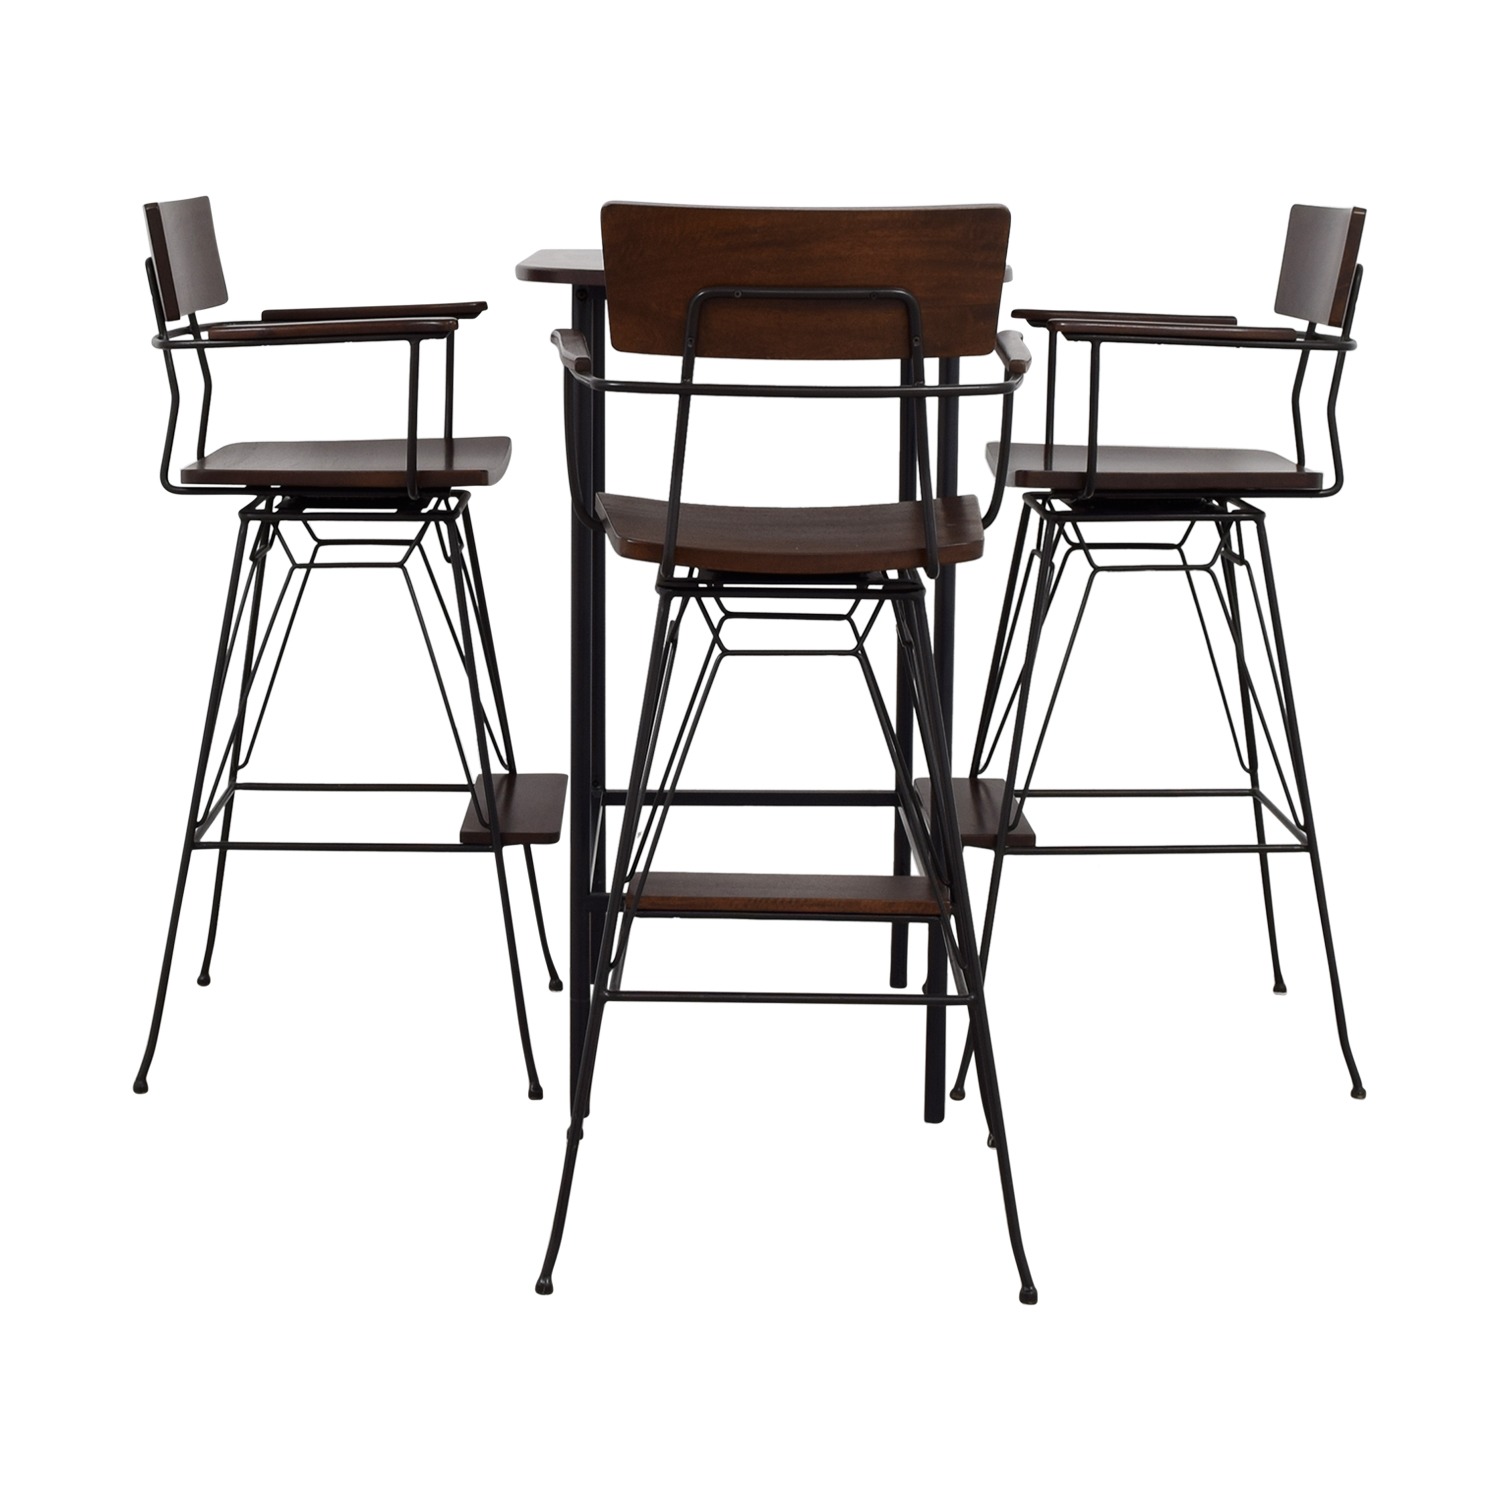 Crate & Barrel Crate & Barrel Pub Dining Set for sale